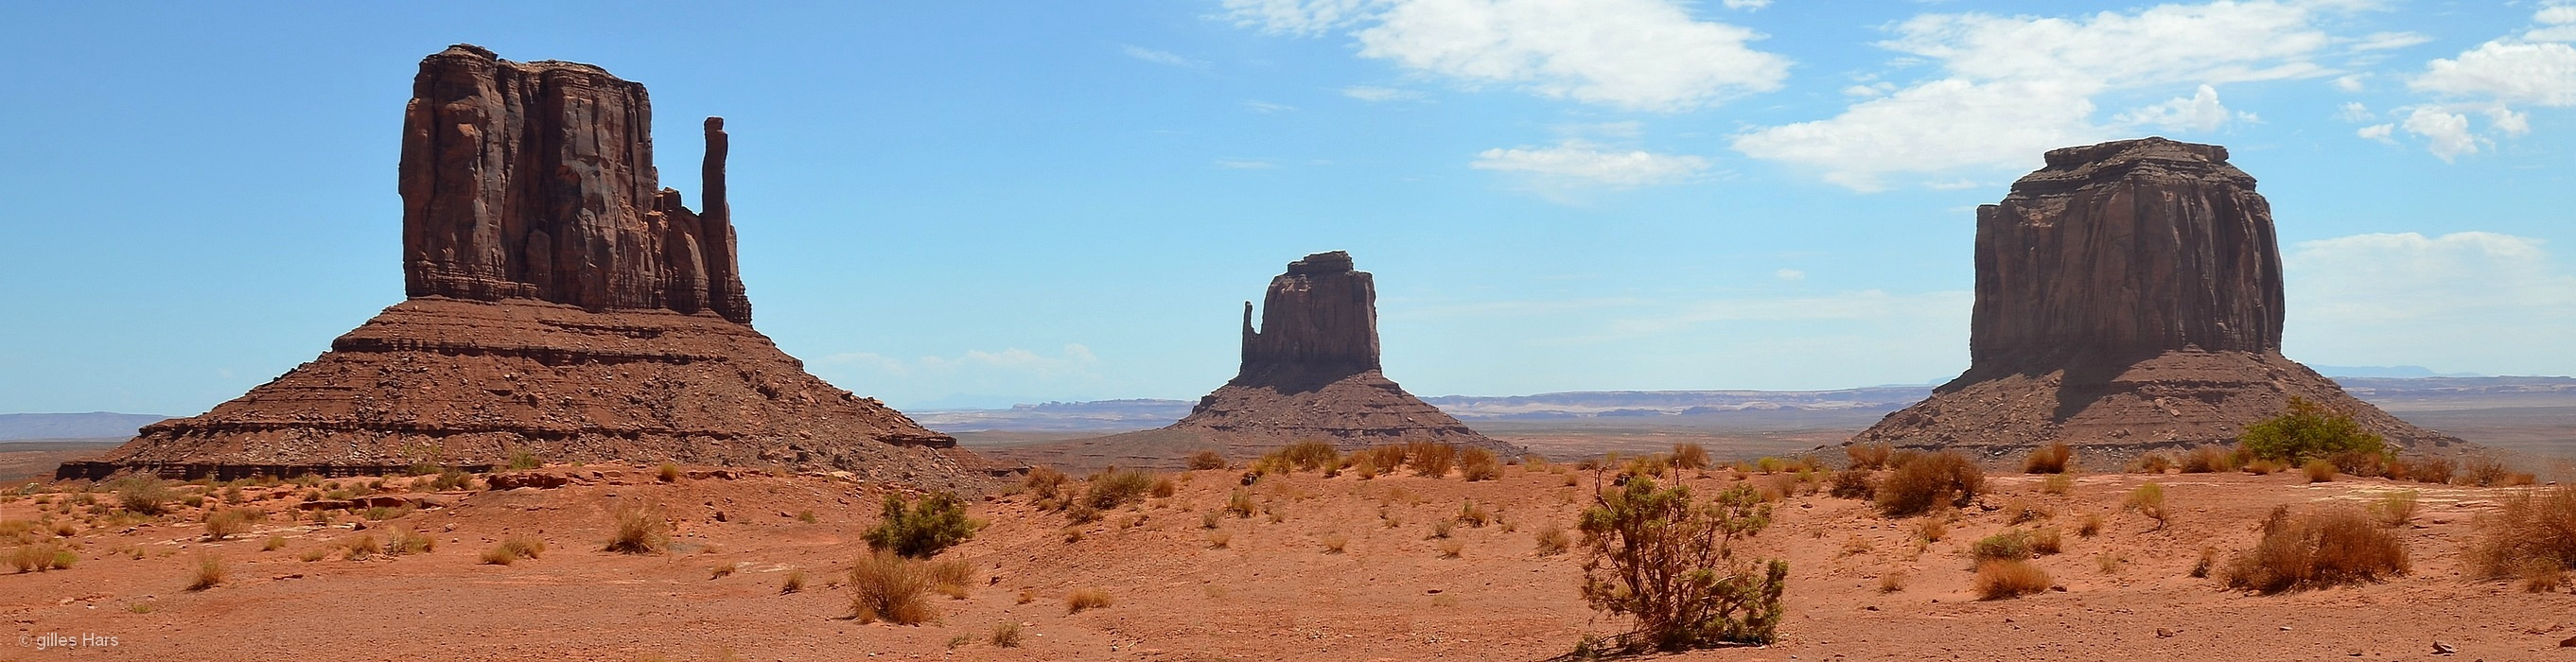 002b monument valley.jpg